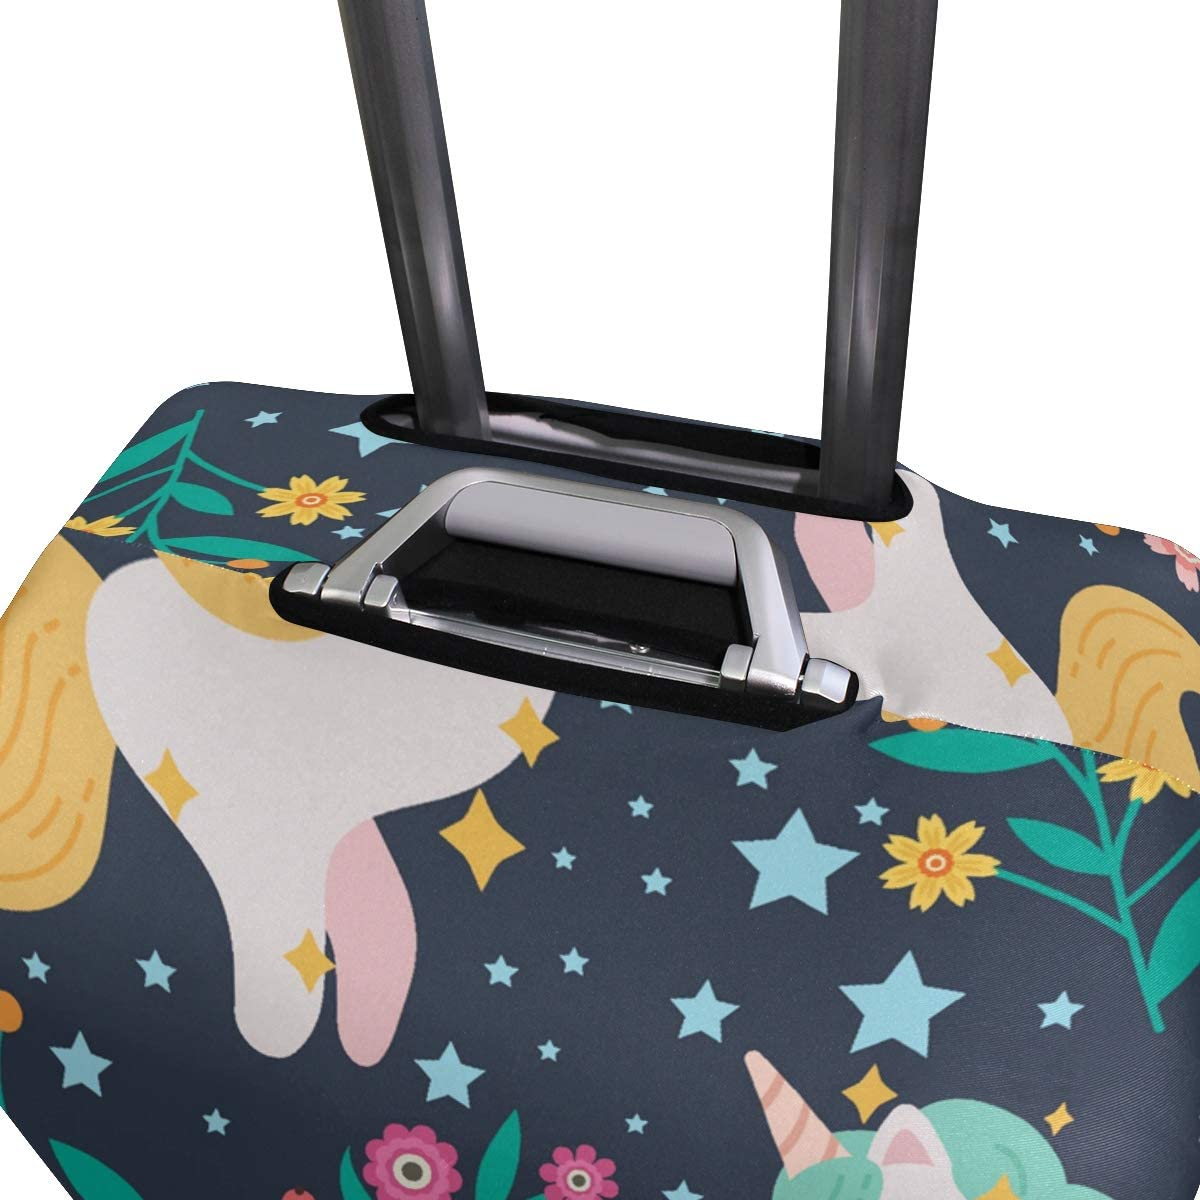 Cute Unicorn Travel Luggage Cover Spandex Washable Suitcase Protective Cover Baggage Protector Fit 18-32 inch Suitcase